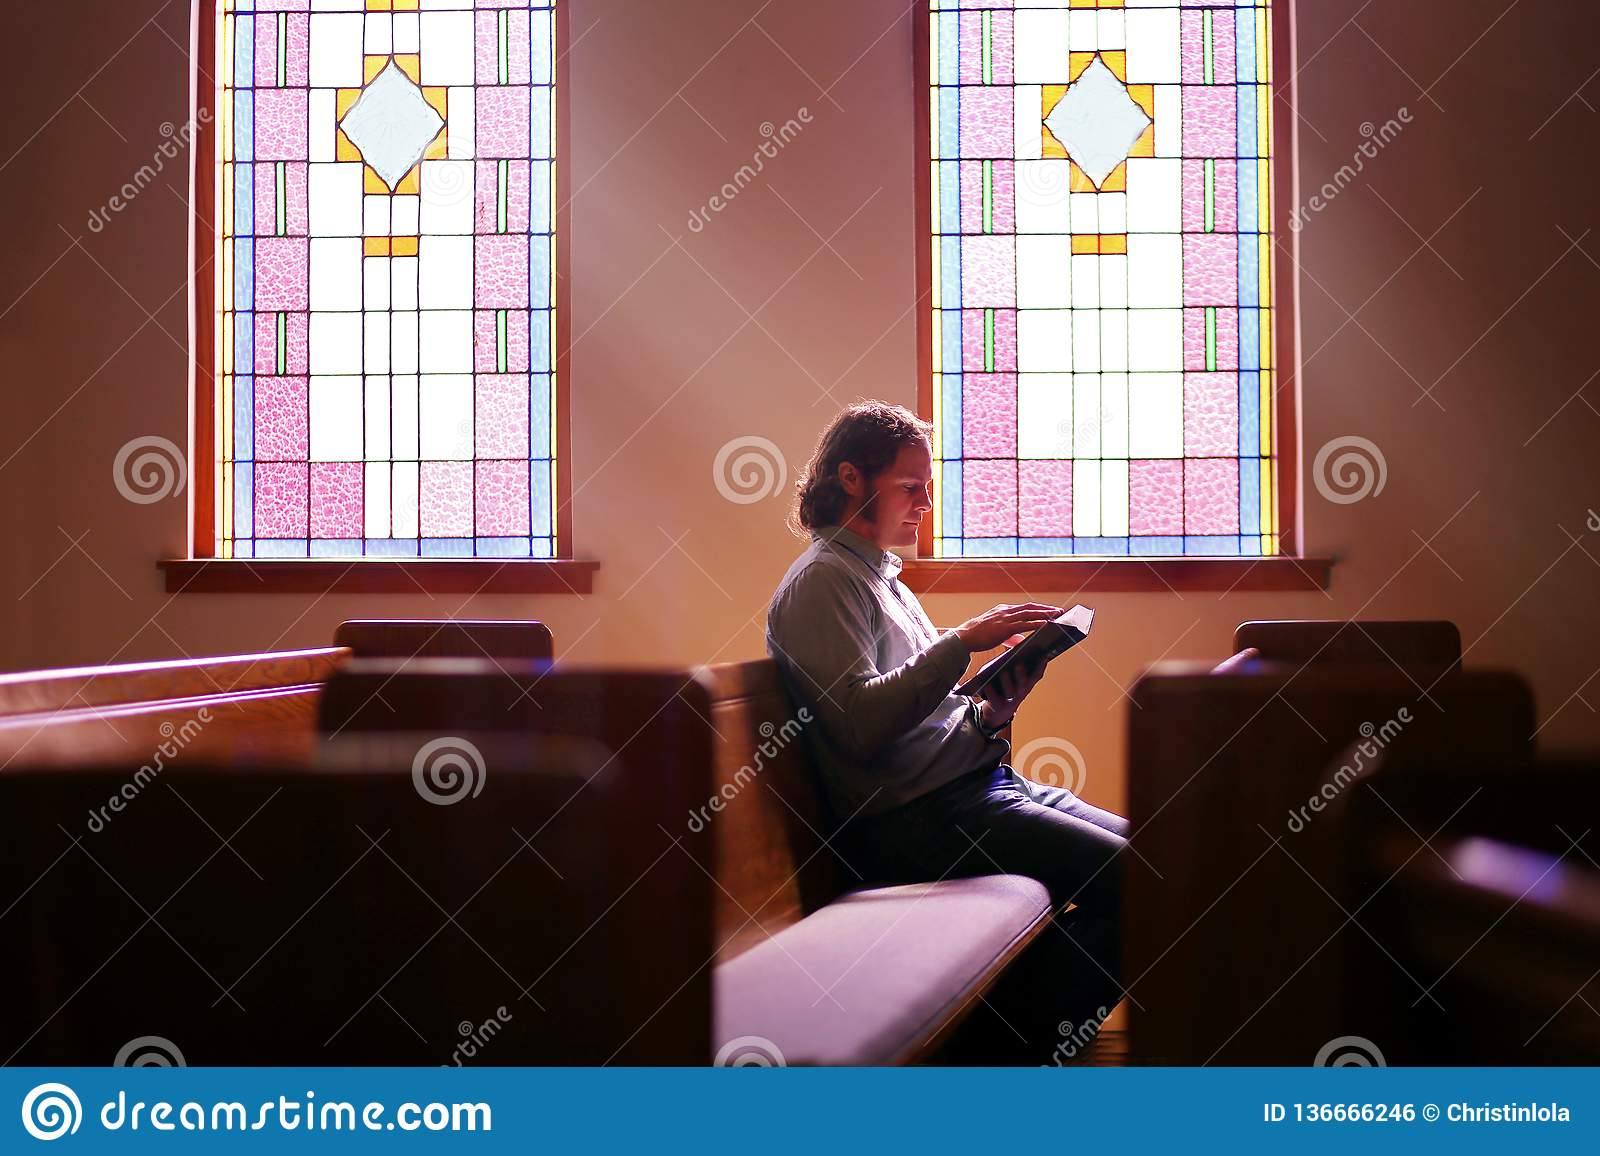 Christian Man Sitting Alone in Donkere Lege Kerkbank door Helder Gebrandschilderd glasvenster